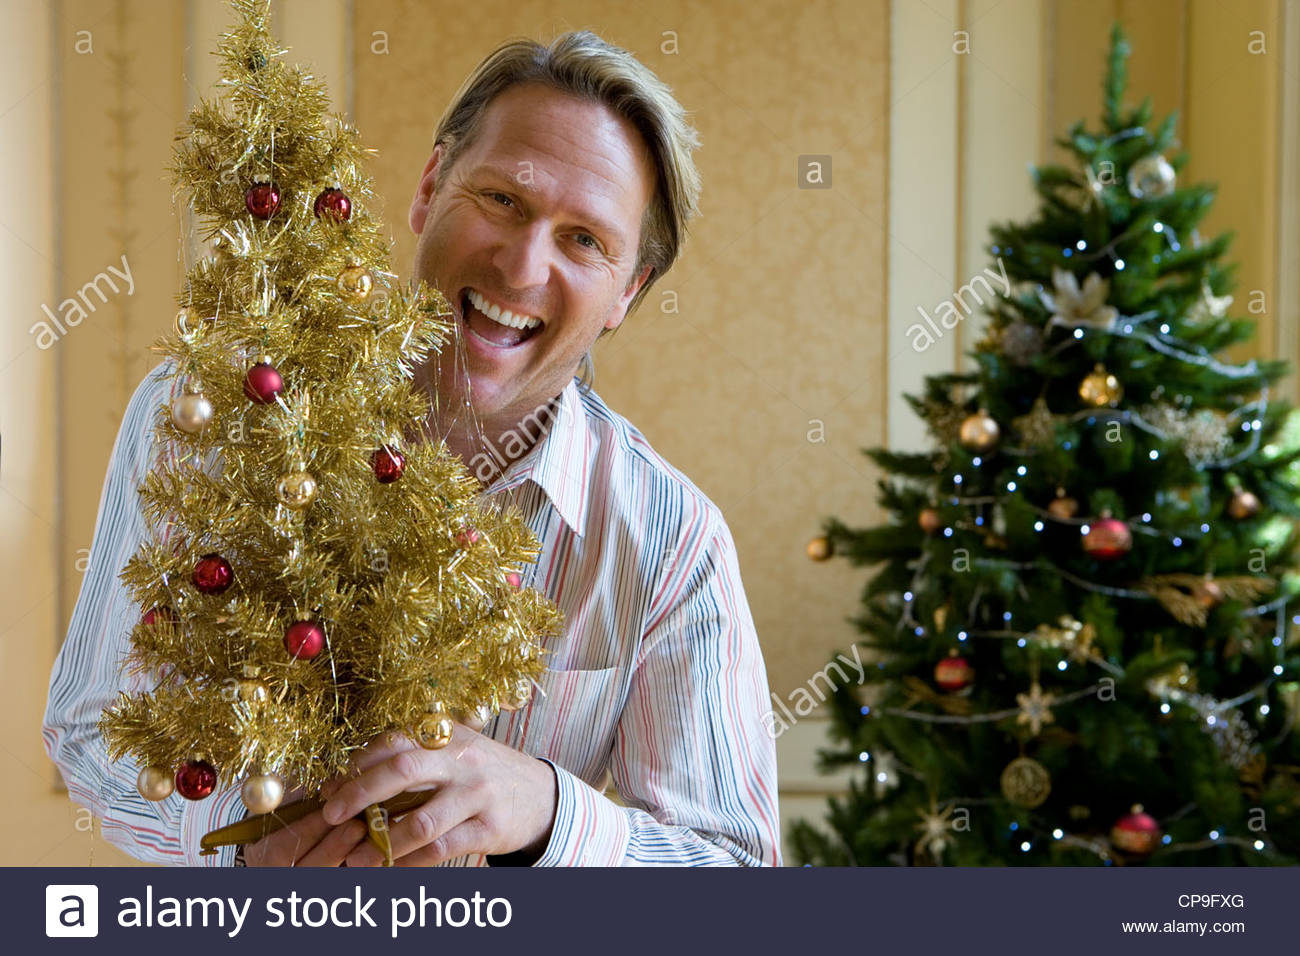 Mature man by Christmas tree with small ornamental tree, smiling, portrait - Stock Image